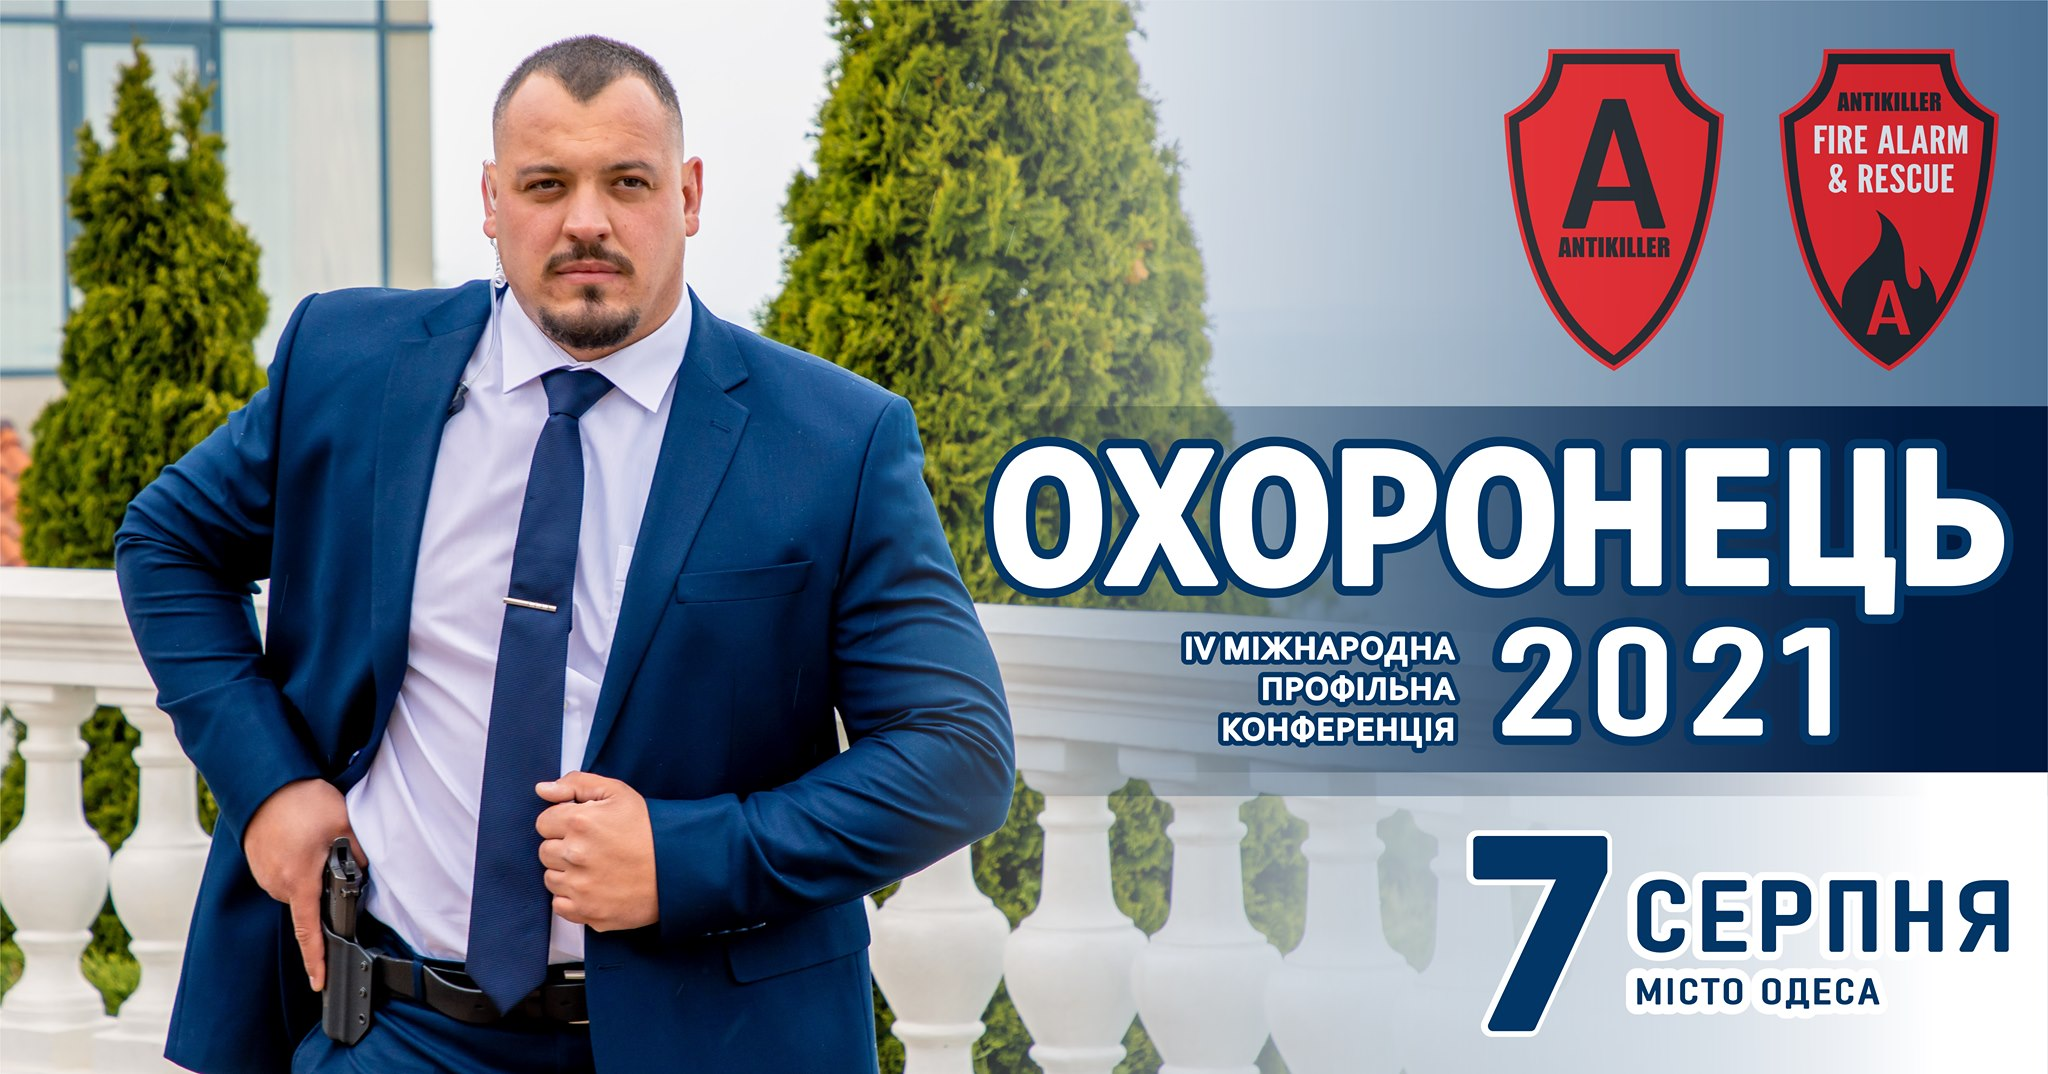 """""""GUARD-2021"""" CONFERENCE TO BE HELD IN ODESSA ON AUGUST 7, ODESSA"""